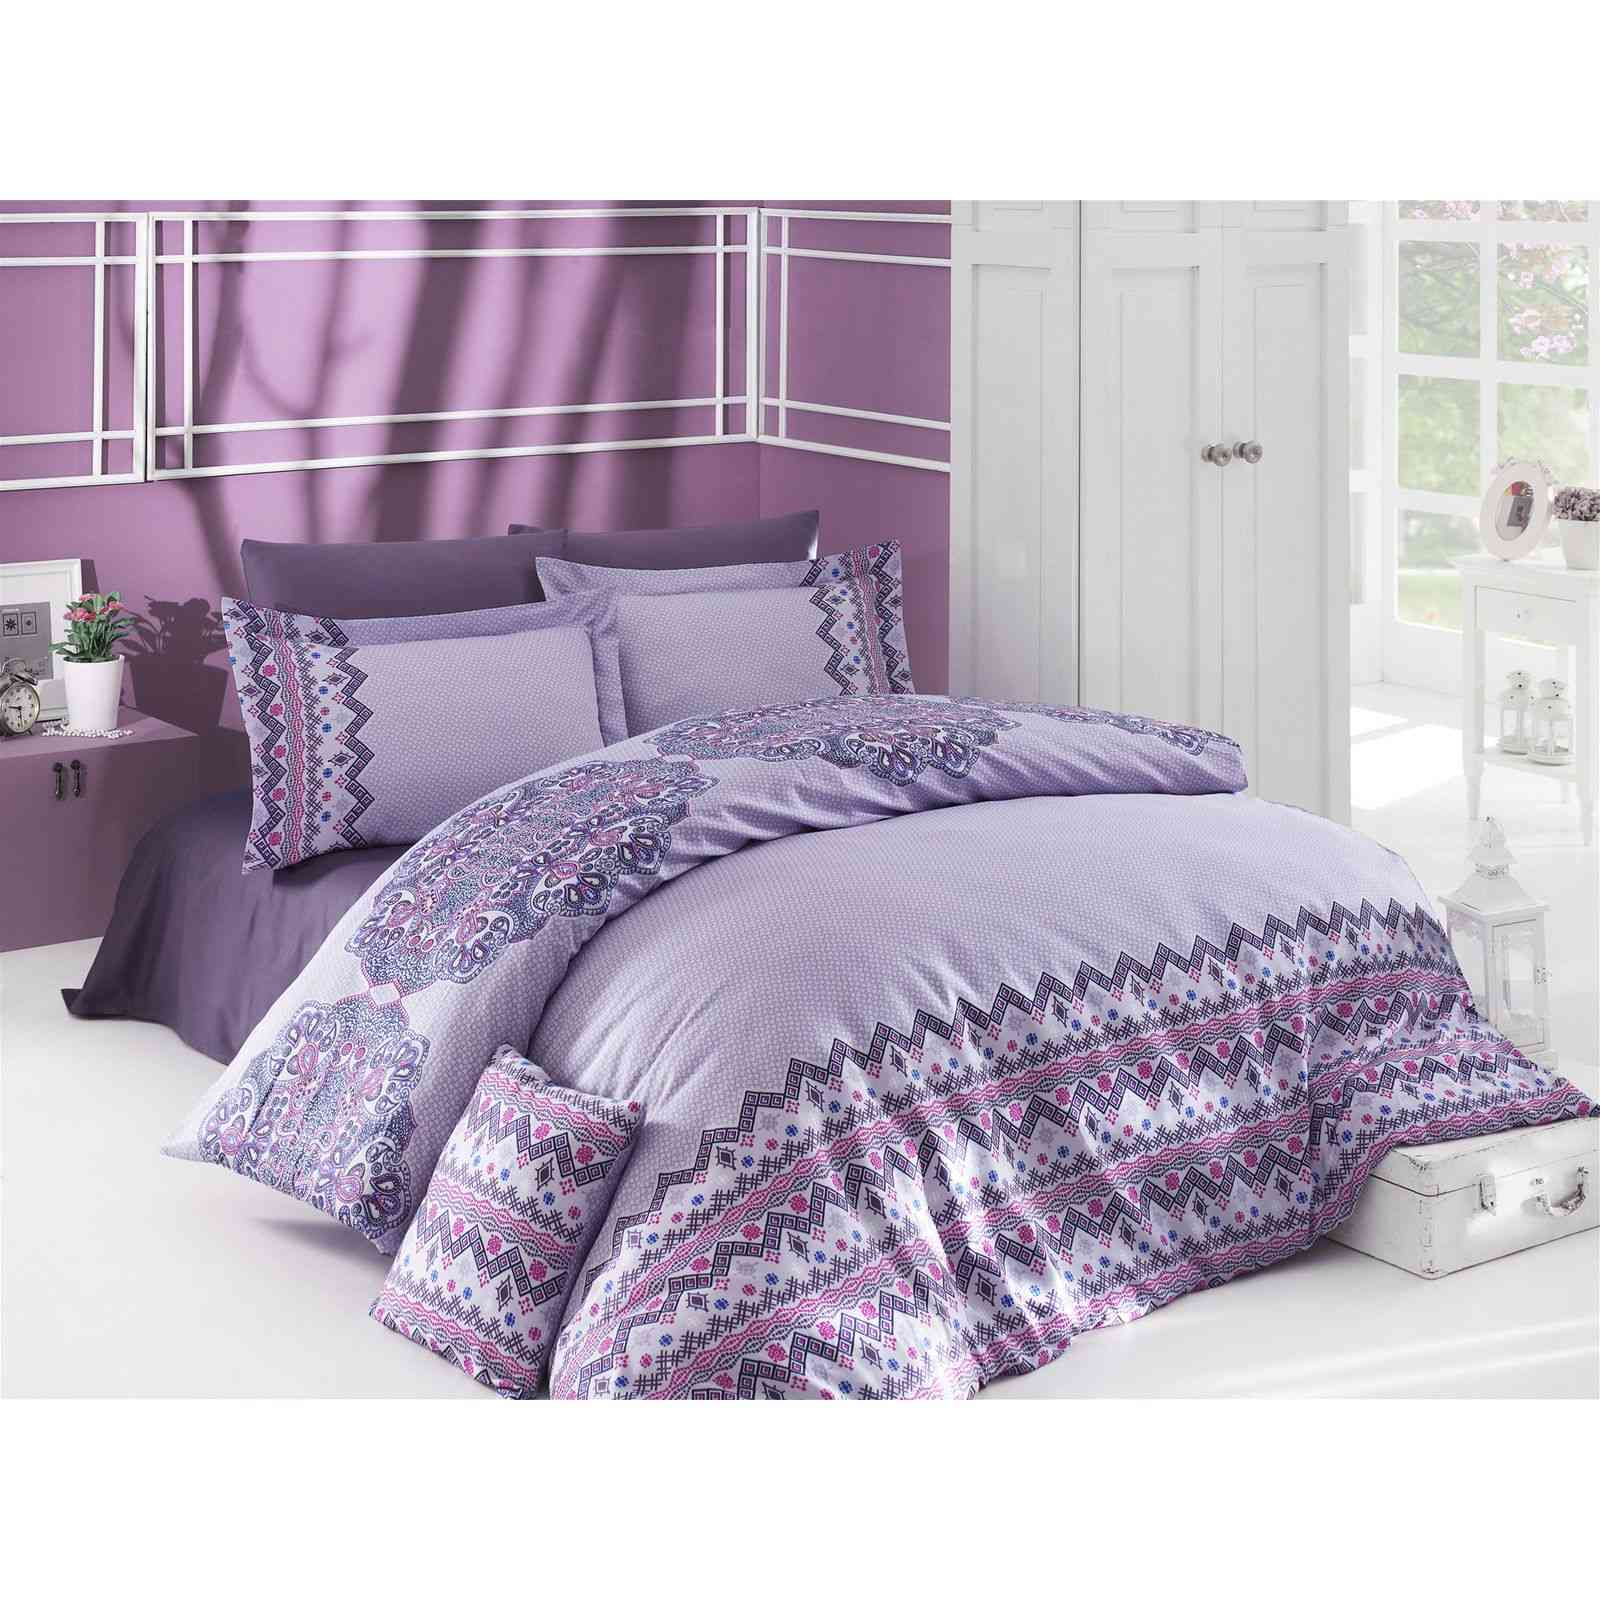 en vogue parure de lit mauve brandalley. Black Bedroom Furniture Sets. Home Design Ideas